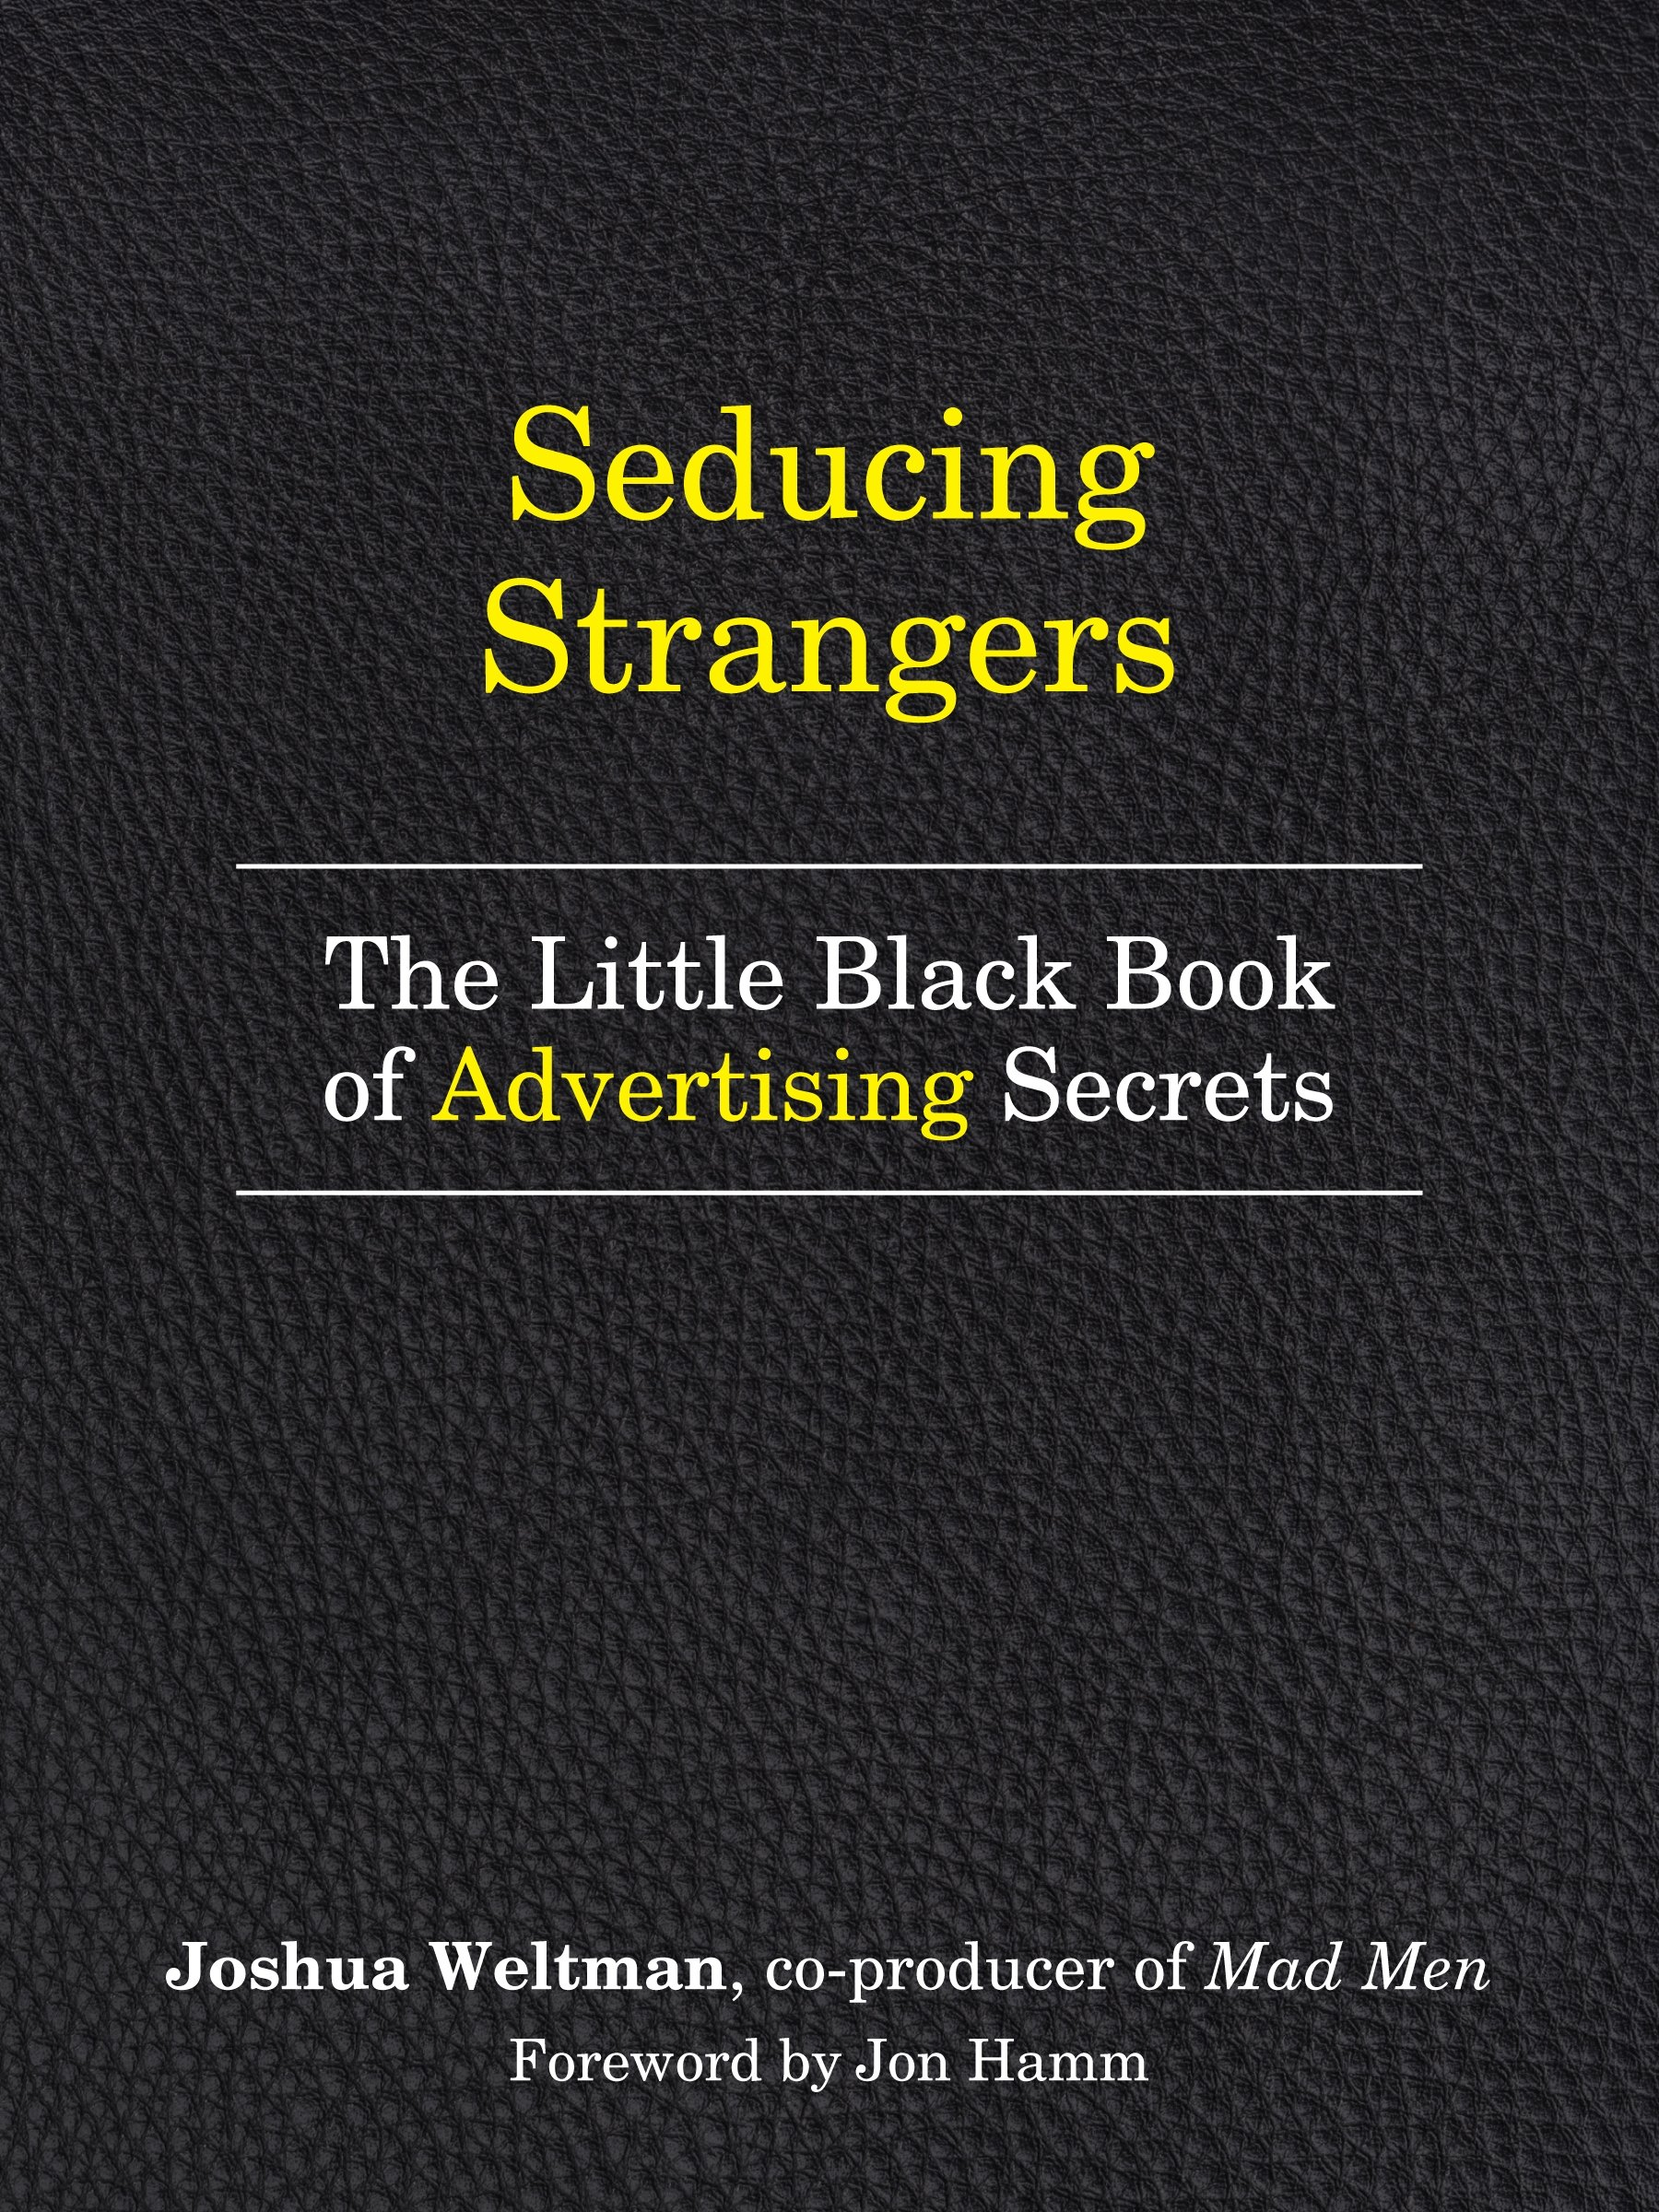 Seducing Strangers: How to Get People to Buy What You're Selling ...